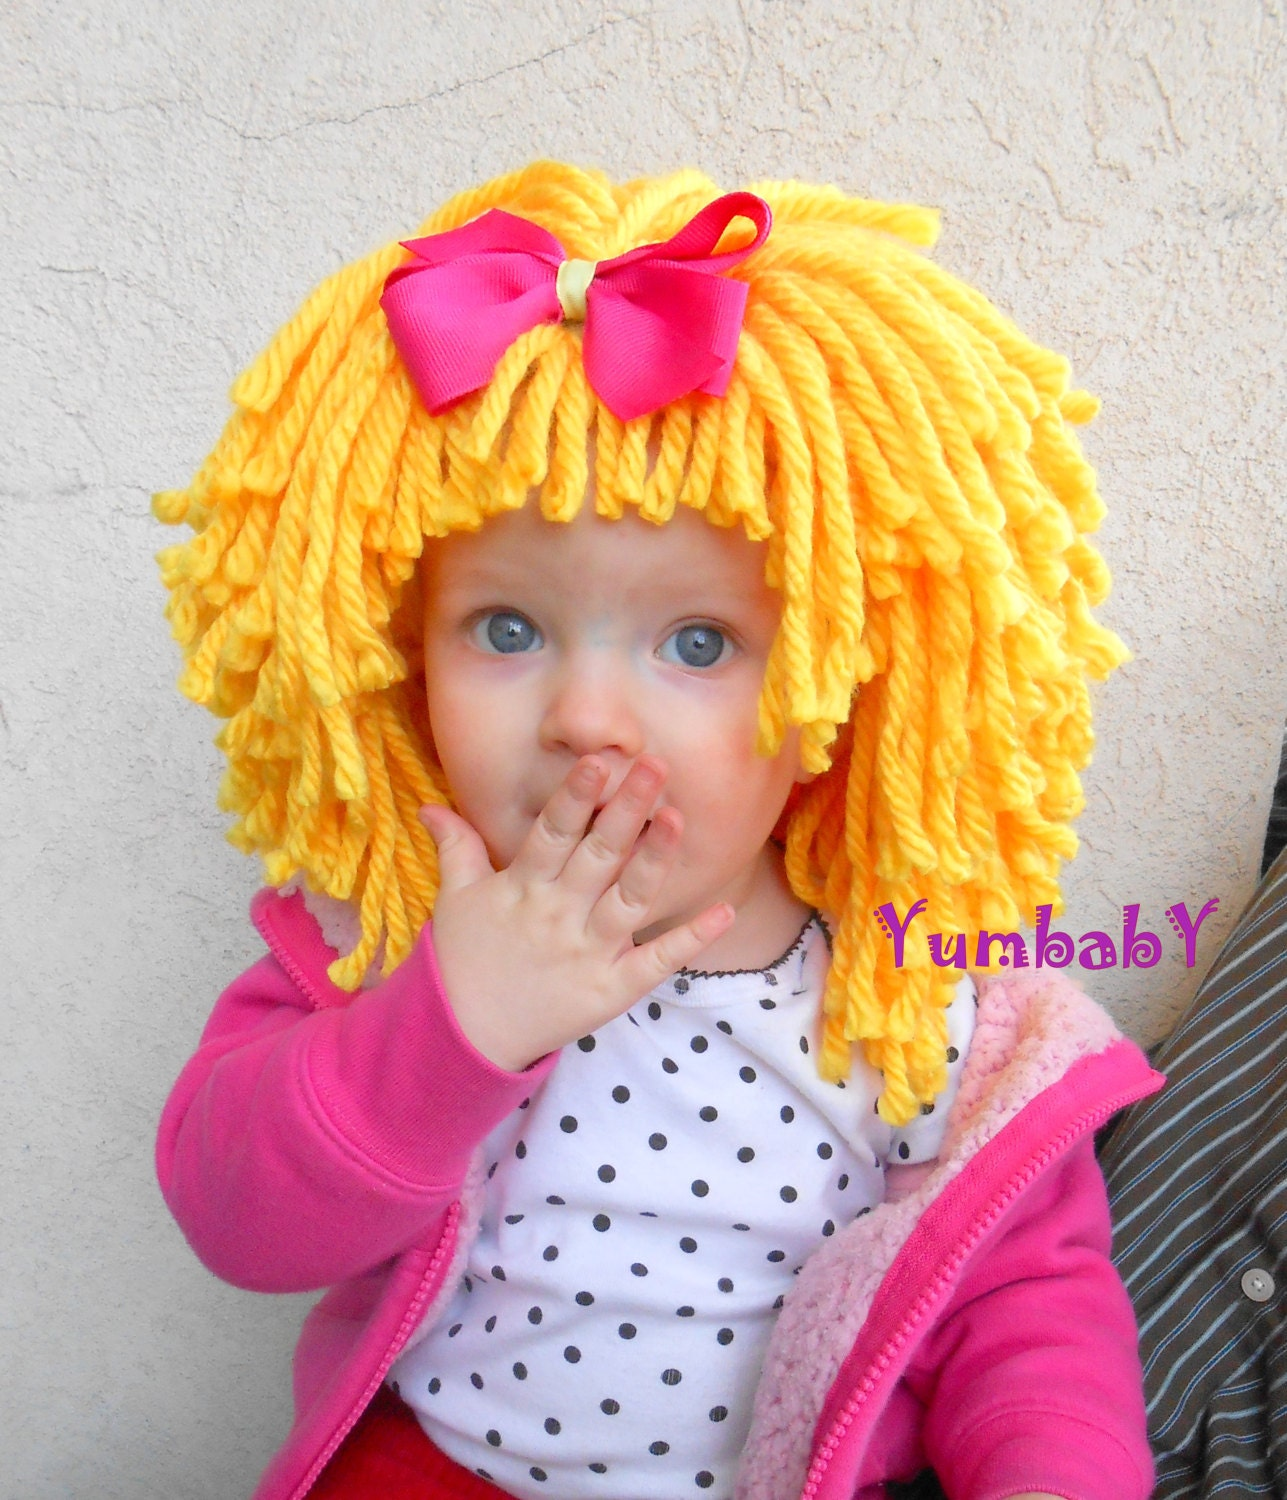 yellow wig halloween costume baby hat baby costume baby hats. Black Bedroom Furniture Sets. Home Design Ideas